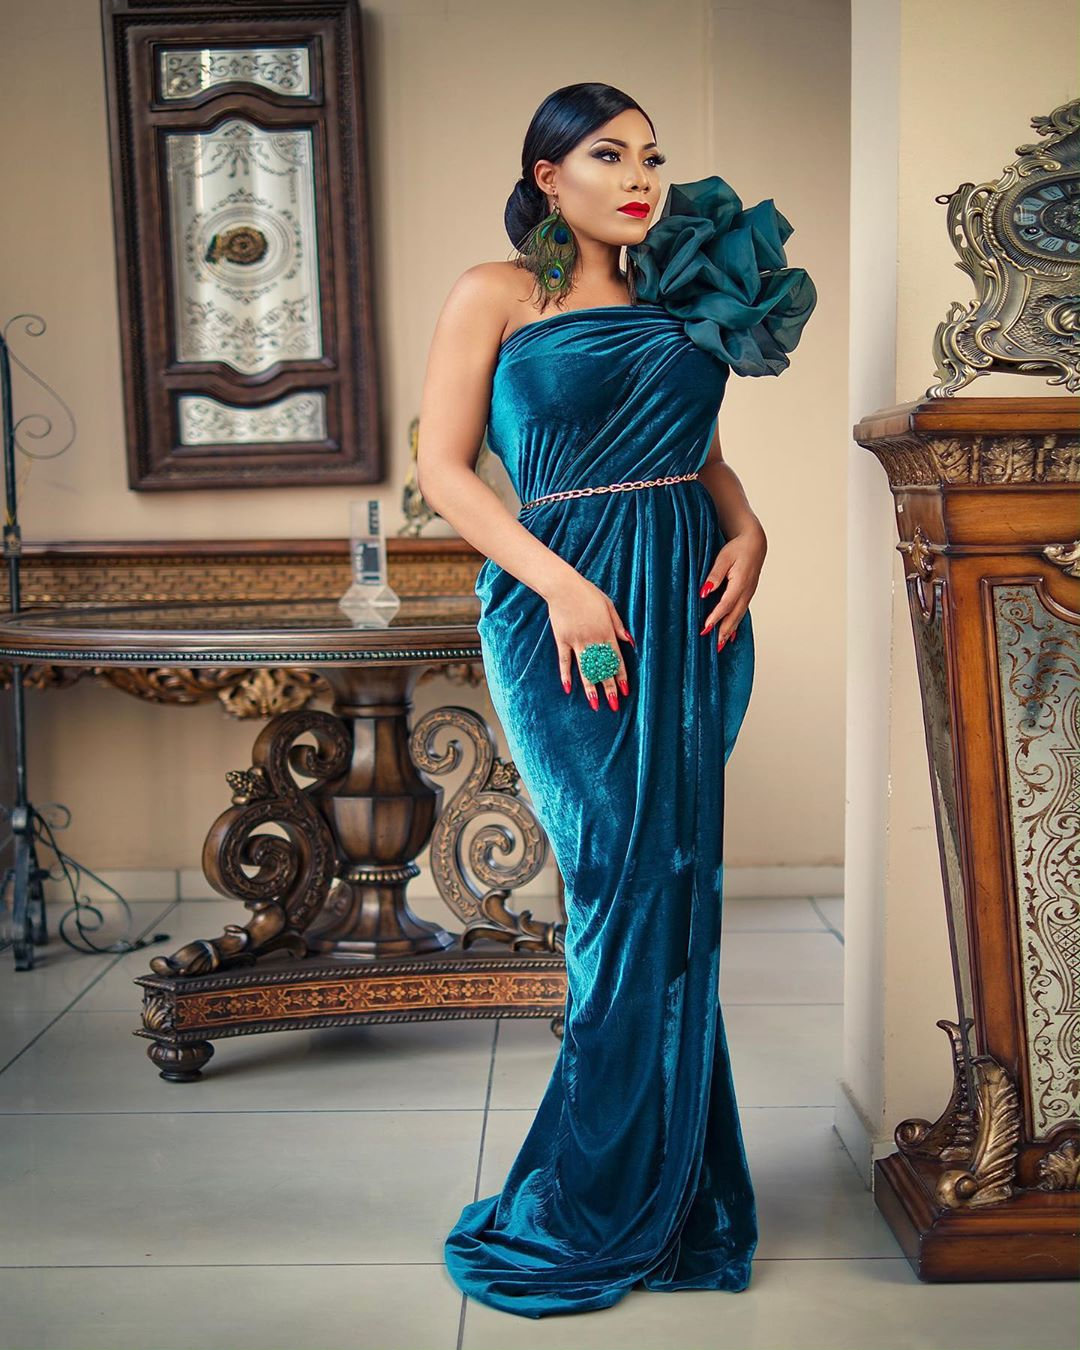 Zynnell Zuh One Hand Gown Is Just The Perfect Height Of A Fashionable Gown